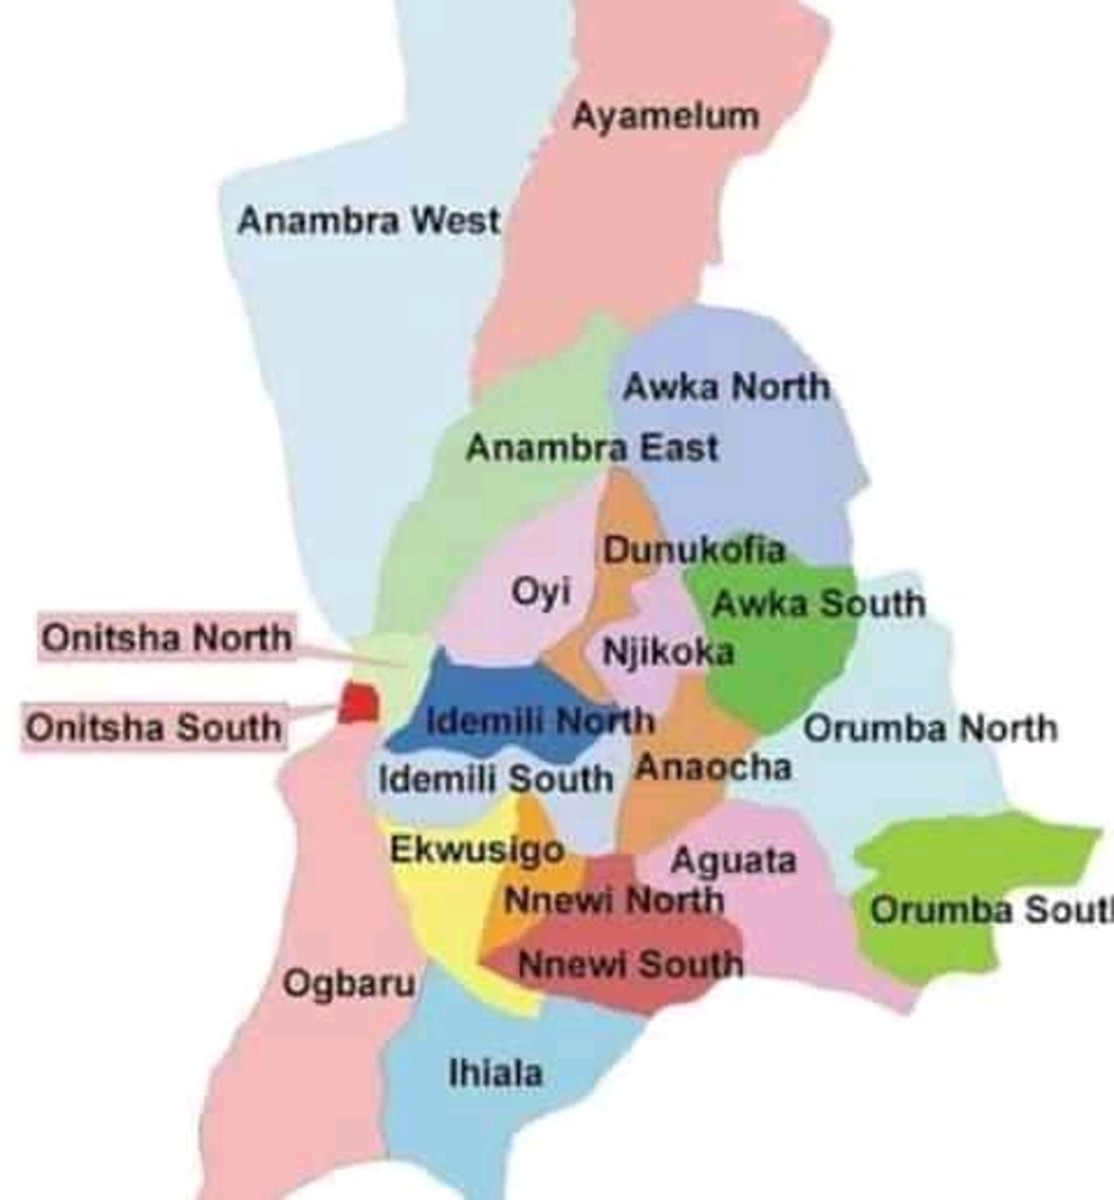 9 Dead Awka-Etiti Traditional Beliefs and Practices